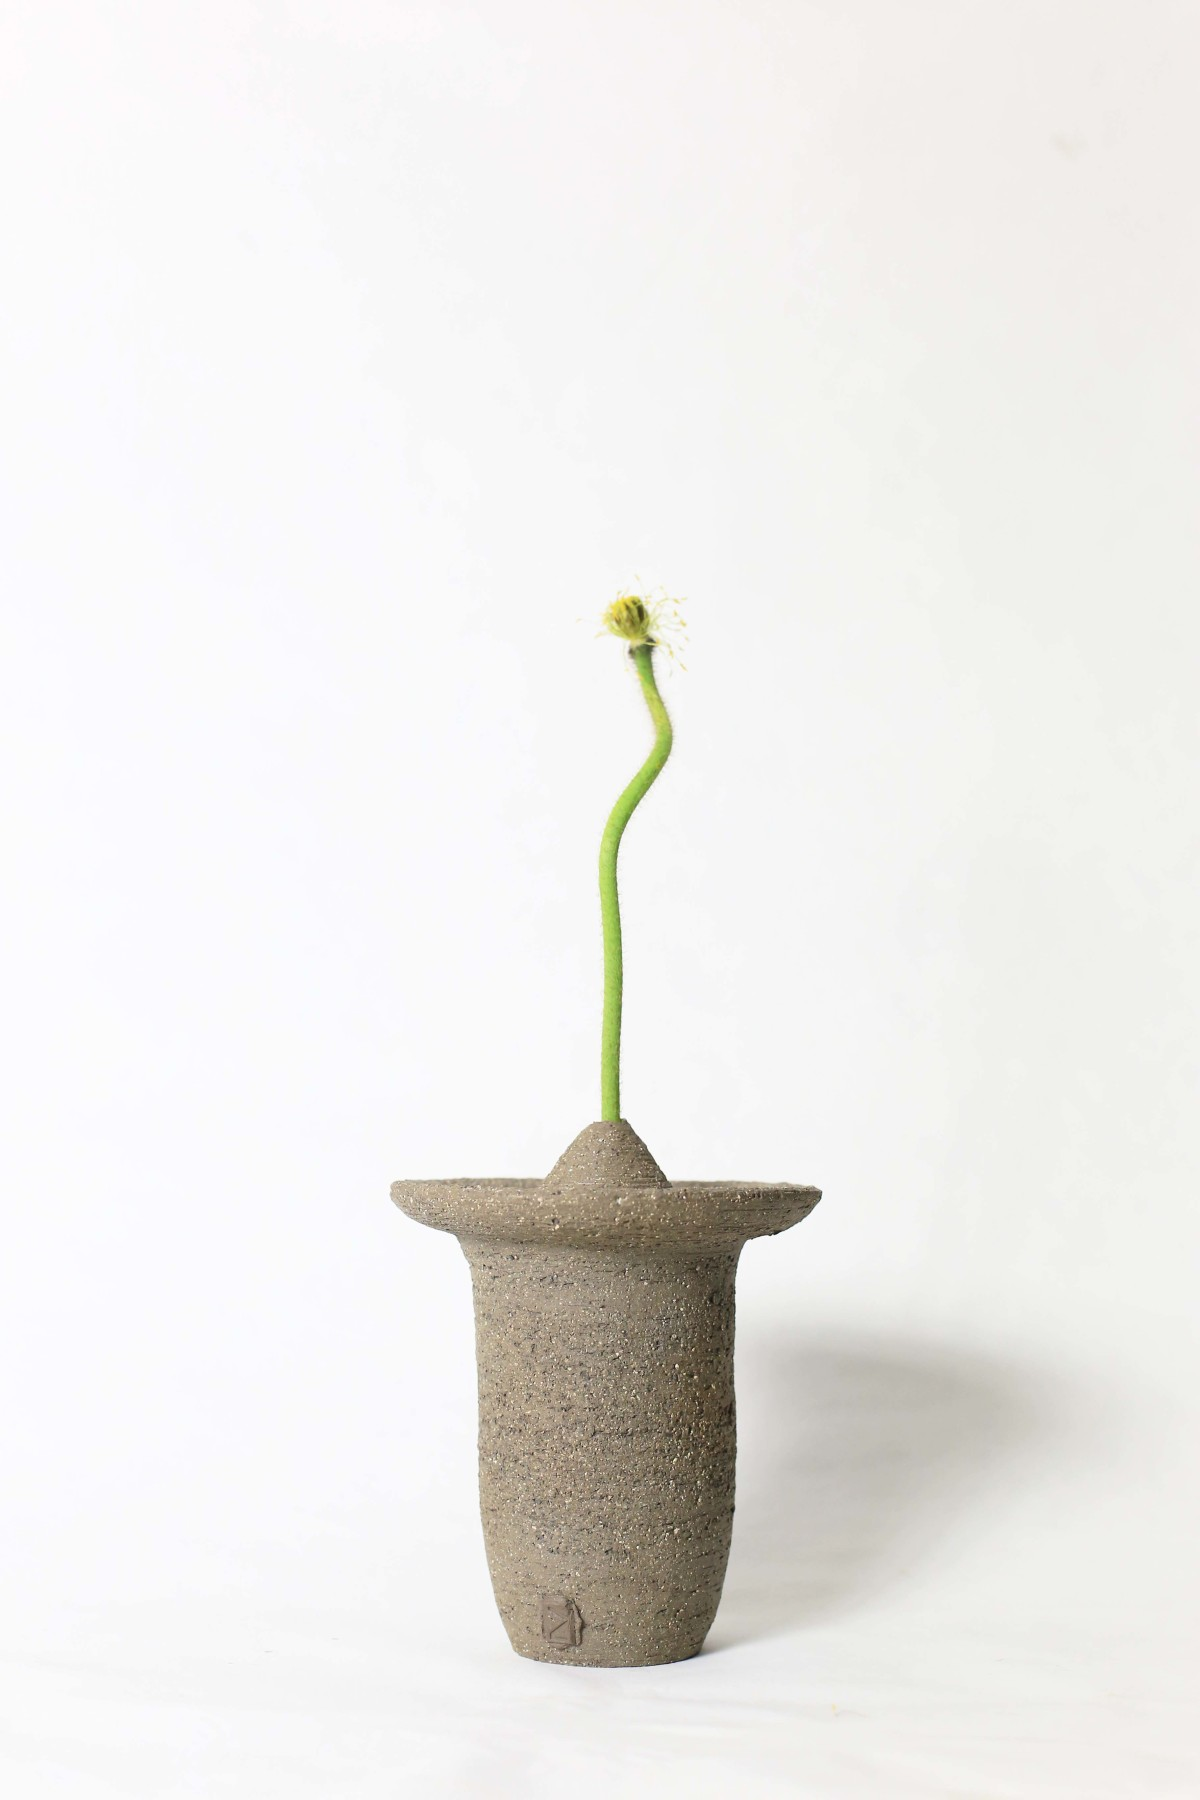 Ufo shaped gray ceramic vase with a flower stem on a white background 2